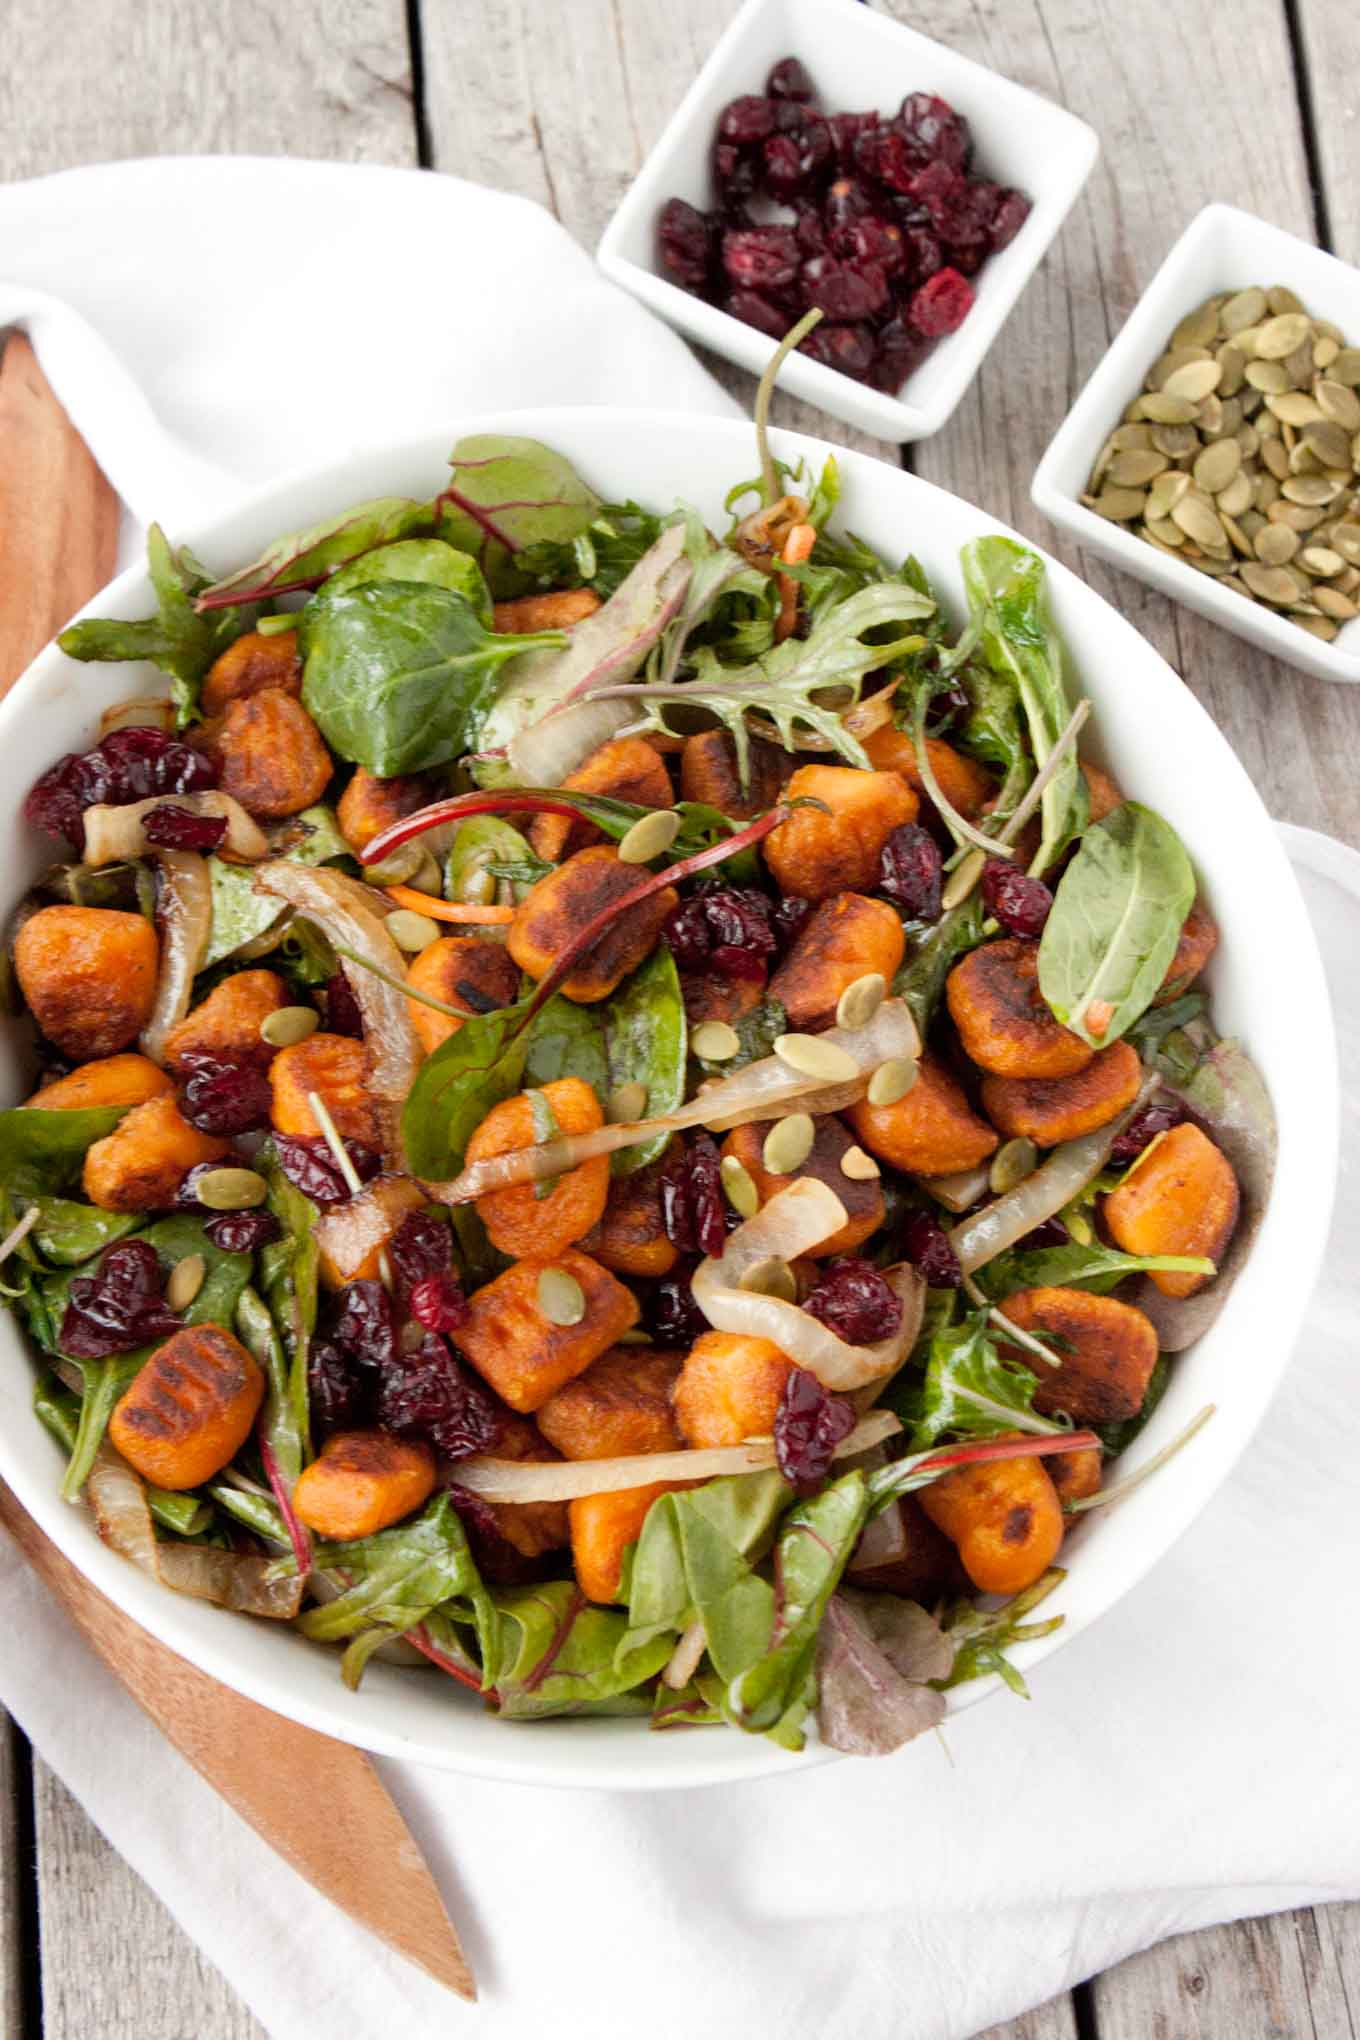 Hearty Warm Winter Salad Recipes - Healthy Eaton | Healthy Eaton